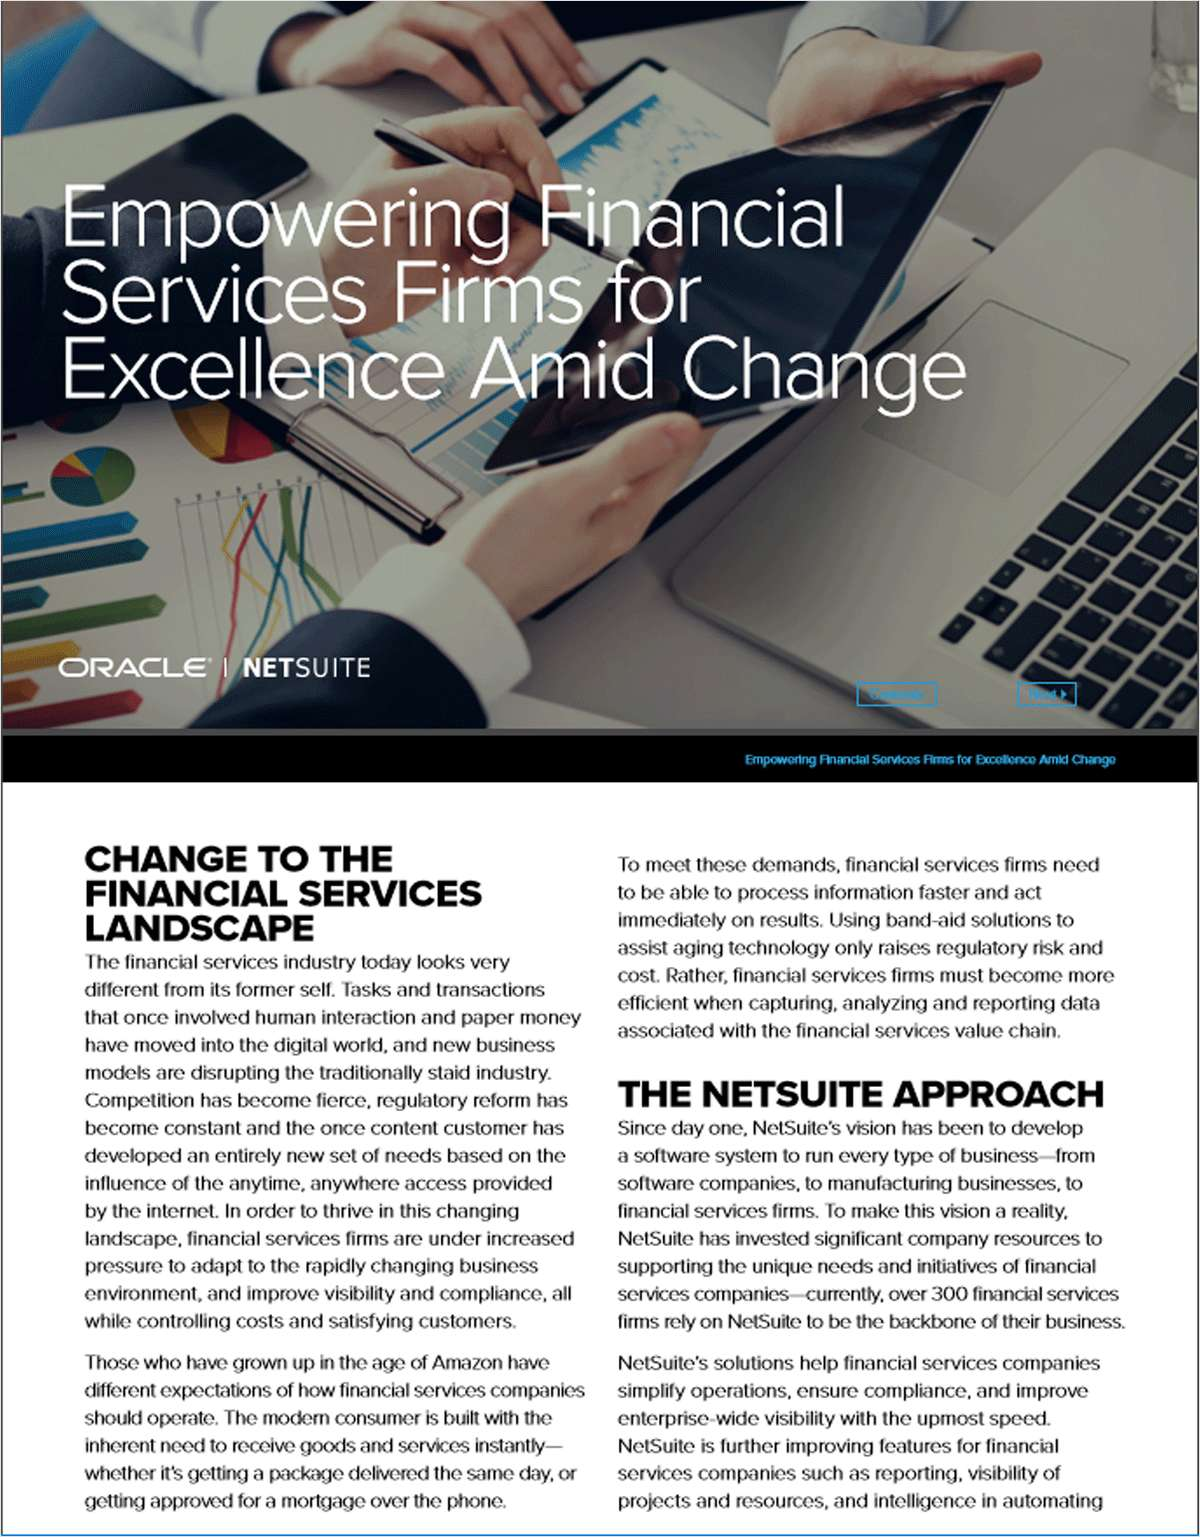 Empowering Financial Services Firms for Excellence Amid Change